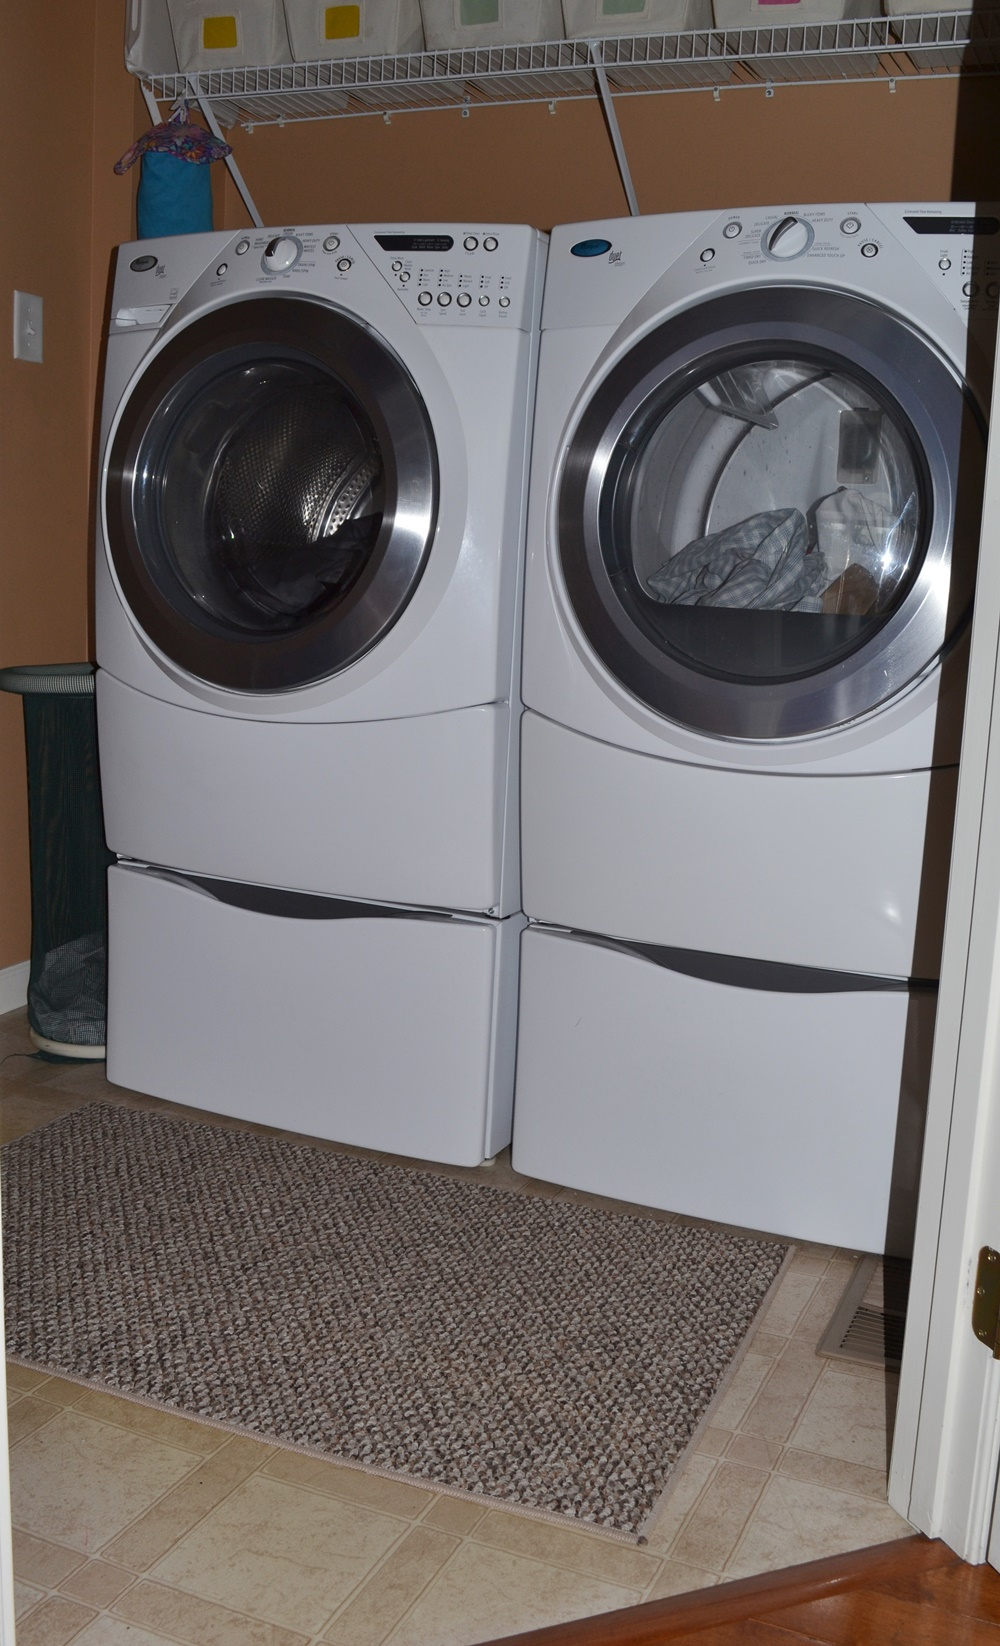 Interesting Whirlpool Duet Washer And Dryer Elecric With Storage Pedestals To Decor